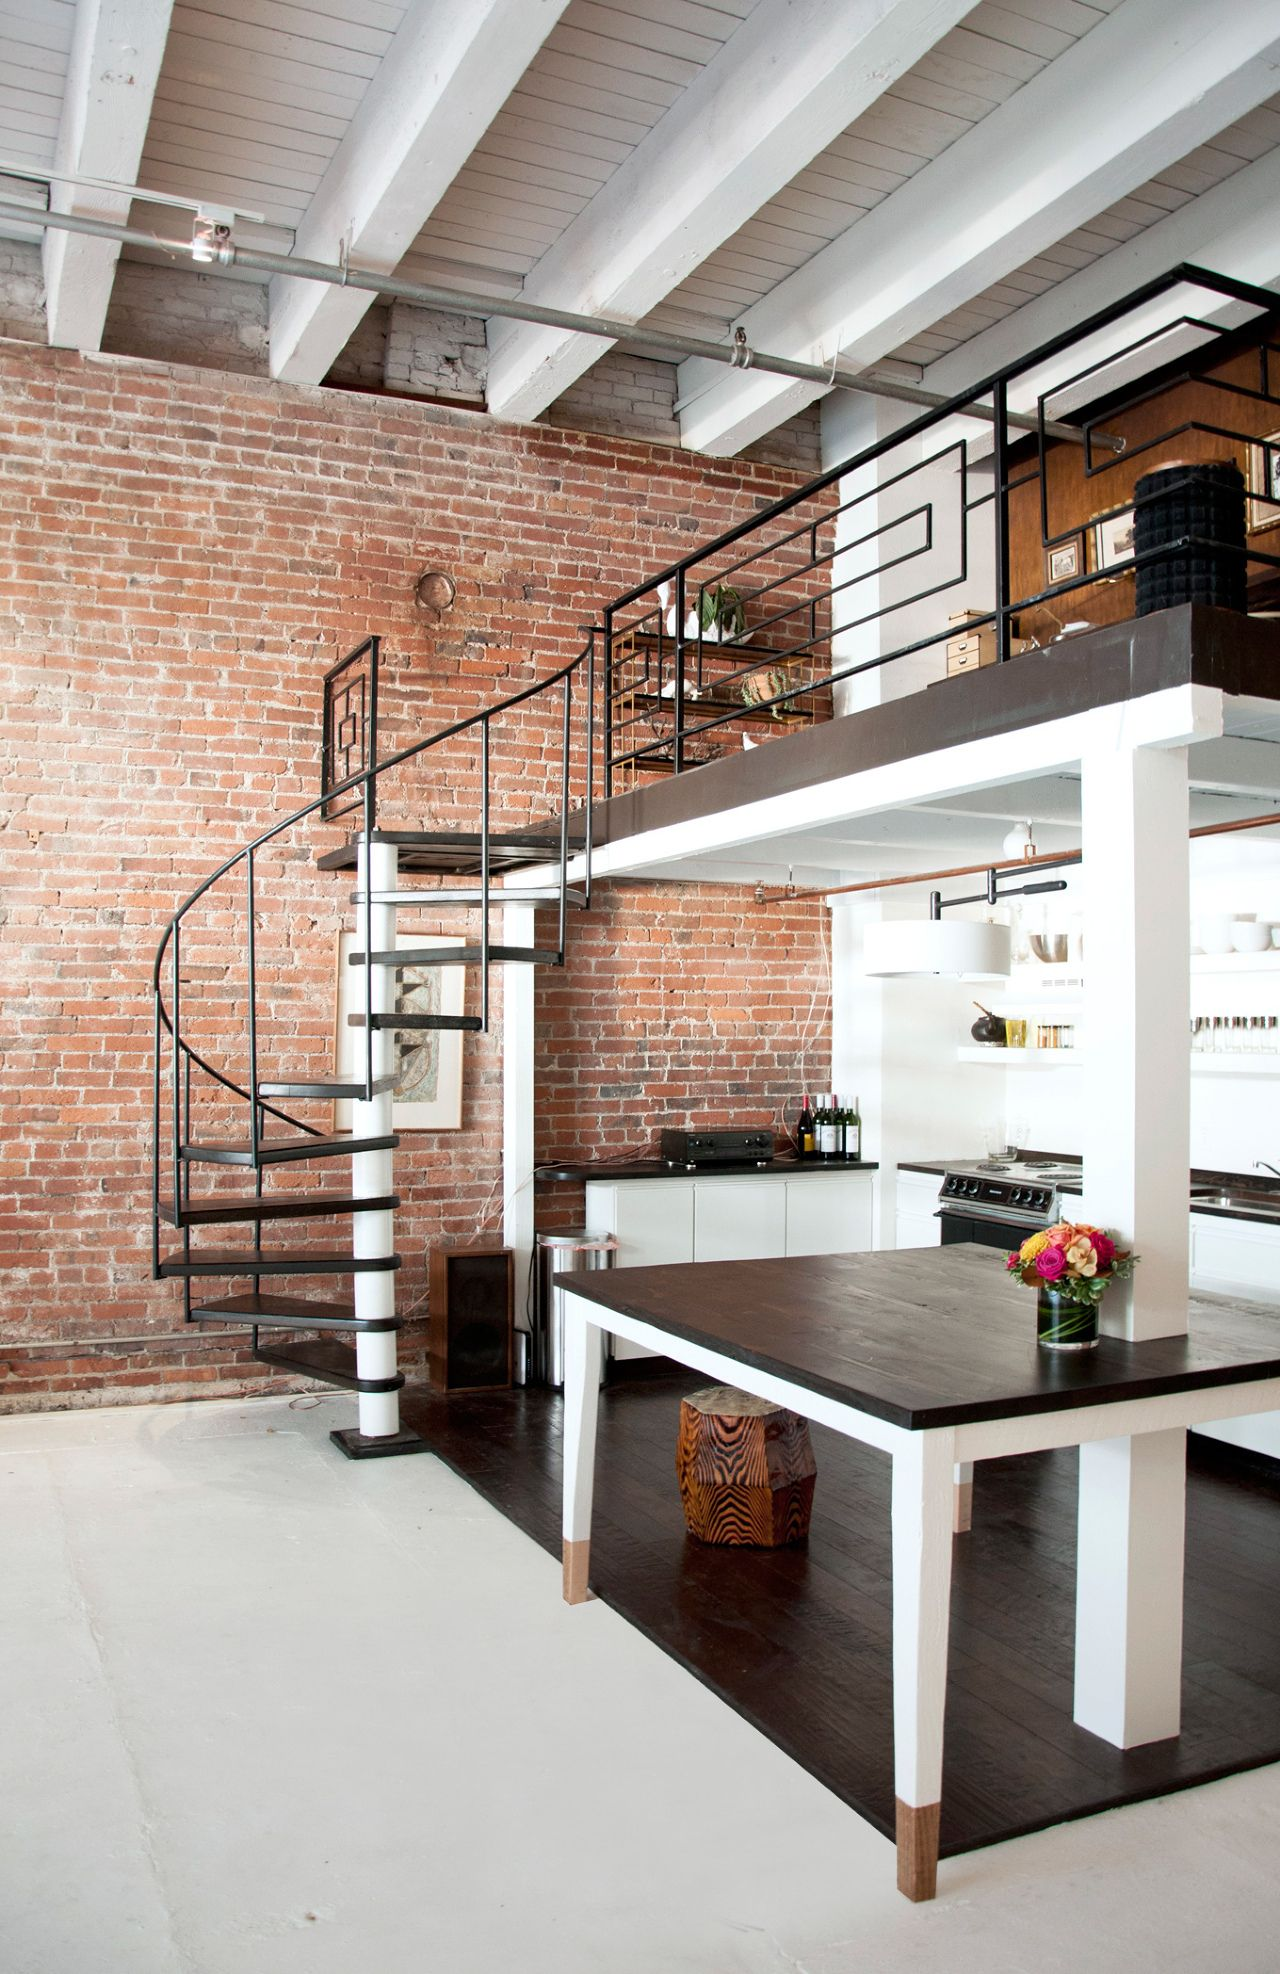 Loft Mezzanine mezzanine study over kitchen. love the industrial pipework & way